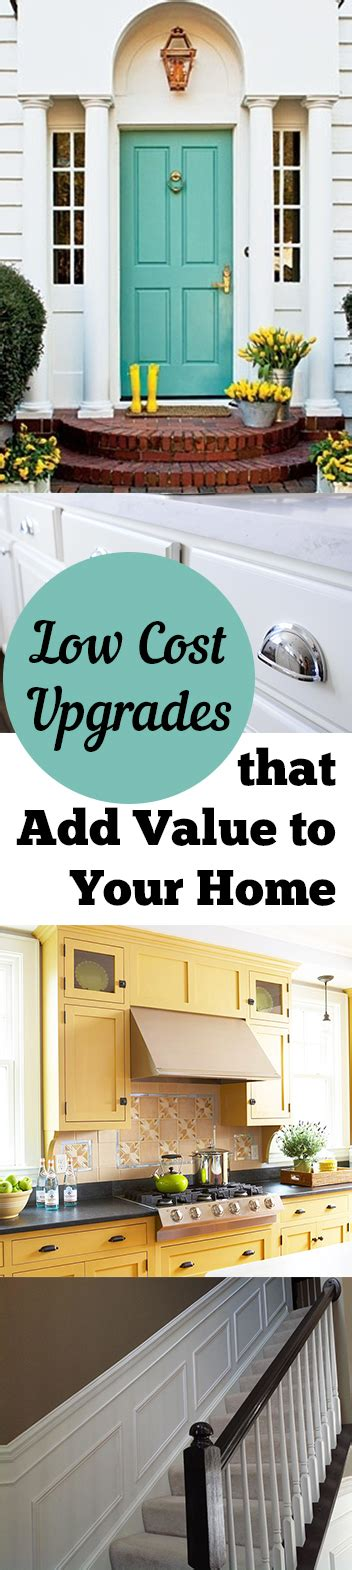 low cost upgrades that add value to your home the doors